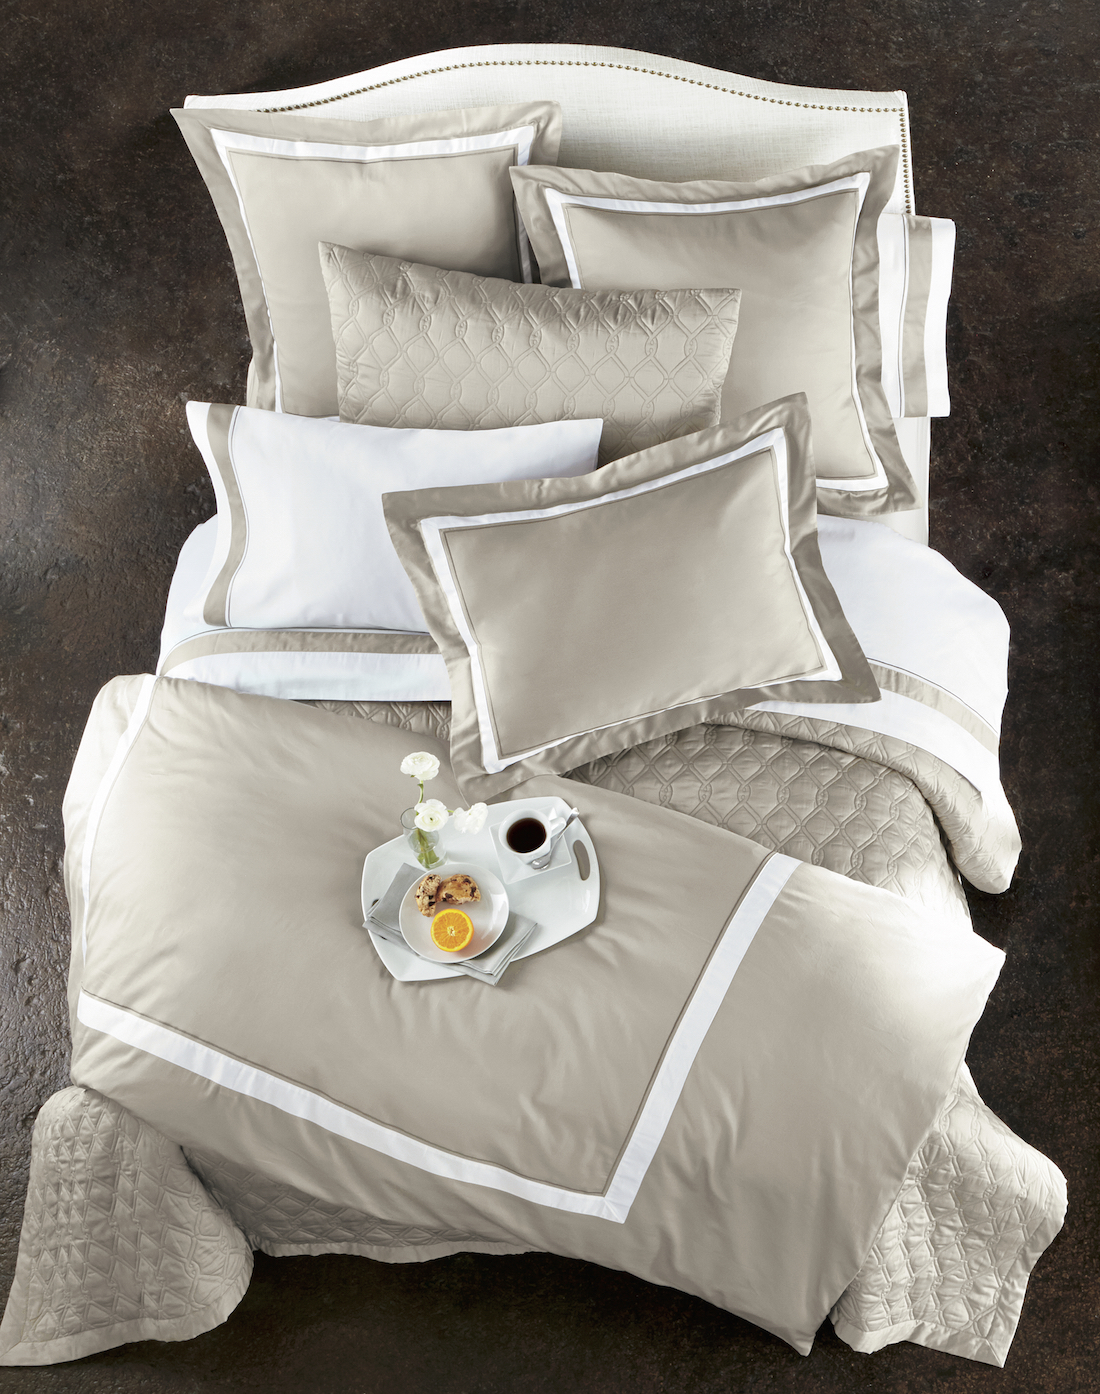 Frette at Home Arno Bedding Collection from Bed Bath & Beyond